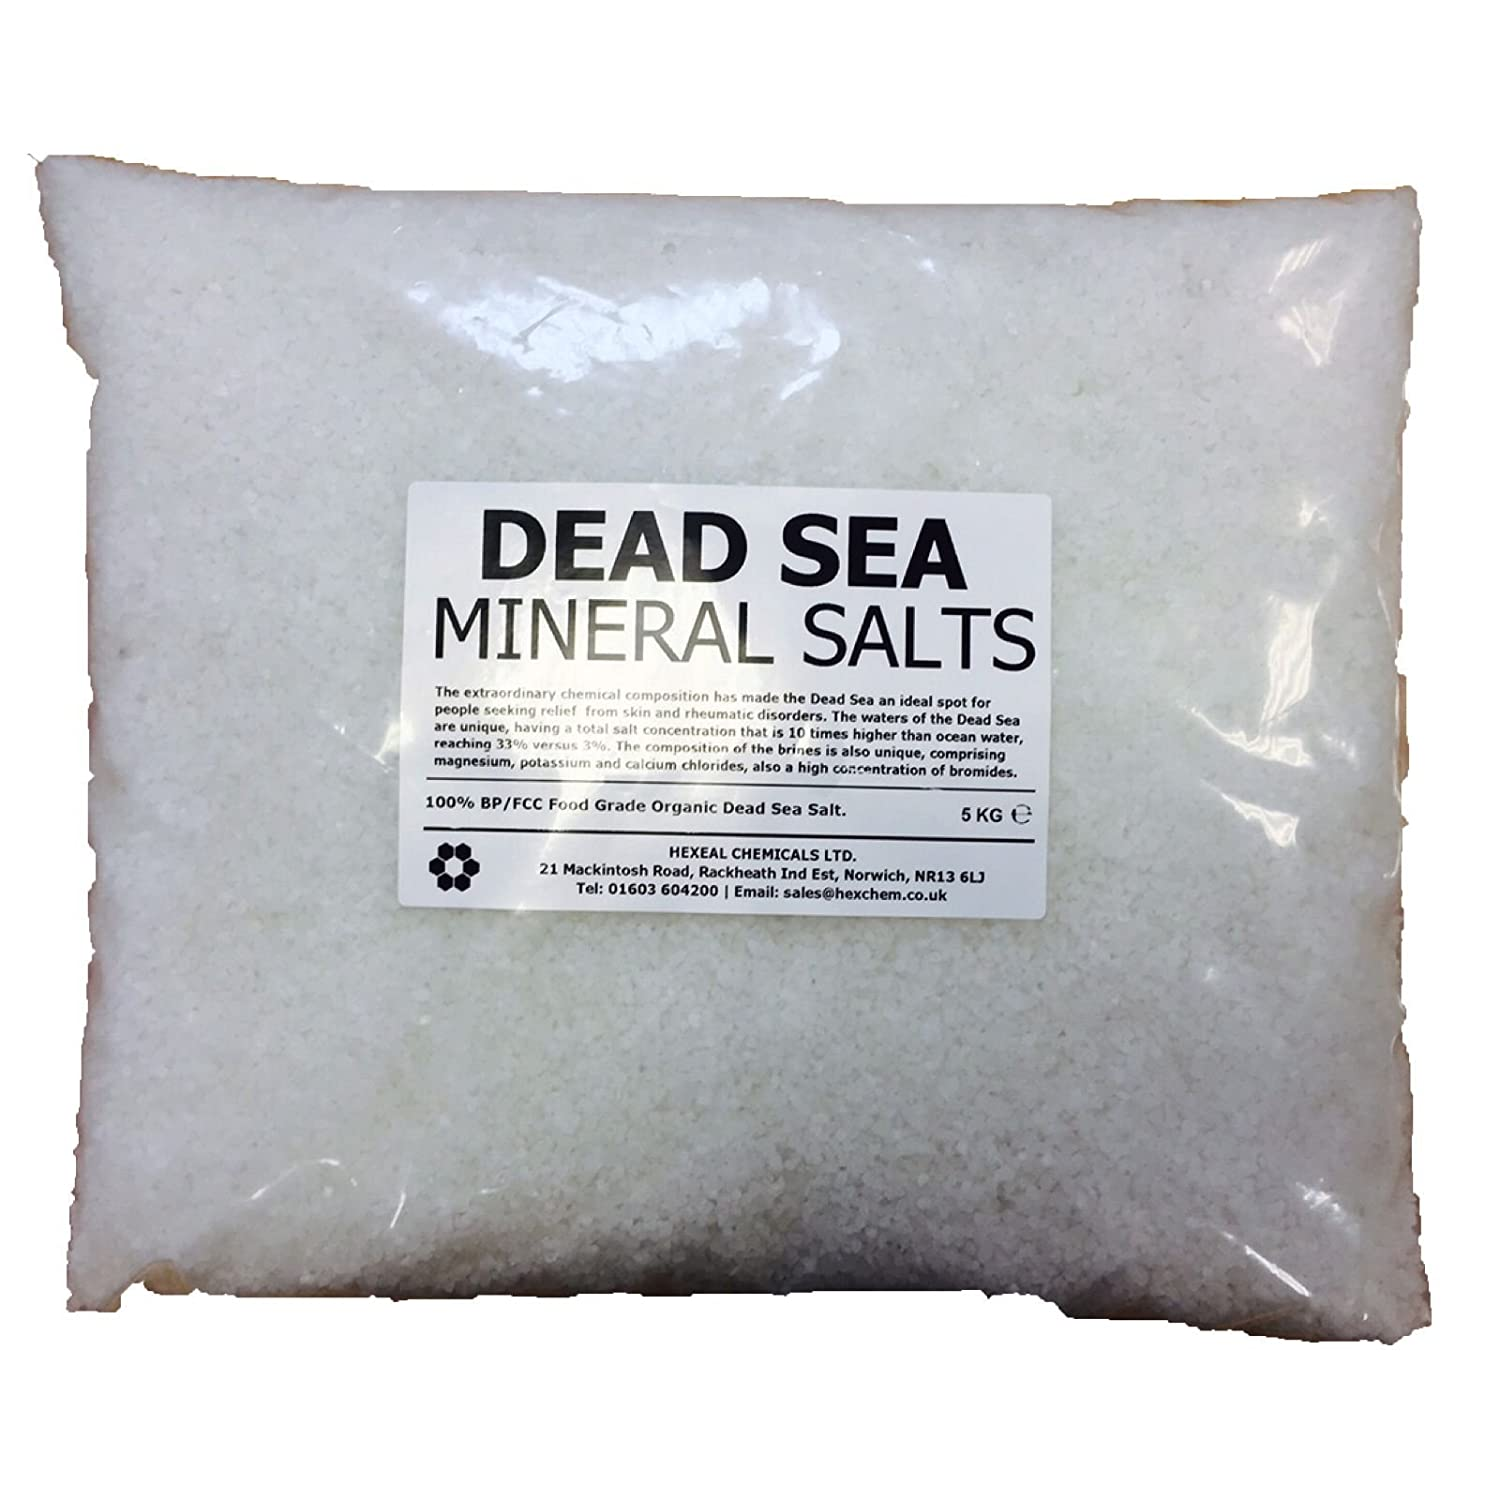 DEAD SEA BATH SALTS | 5KG BAG | 100% Natural Organic | FCC Food Grade Dead Sea Works Ltd.